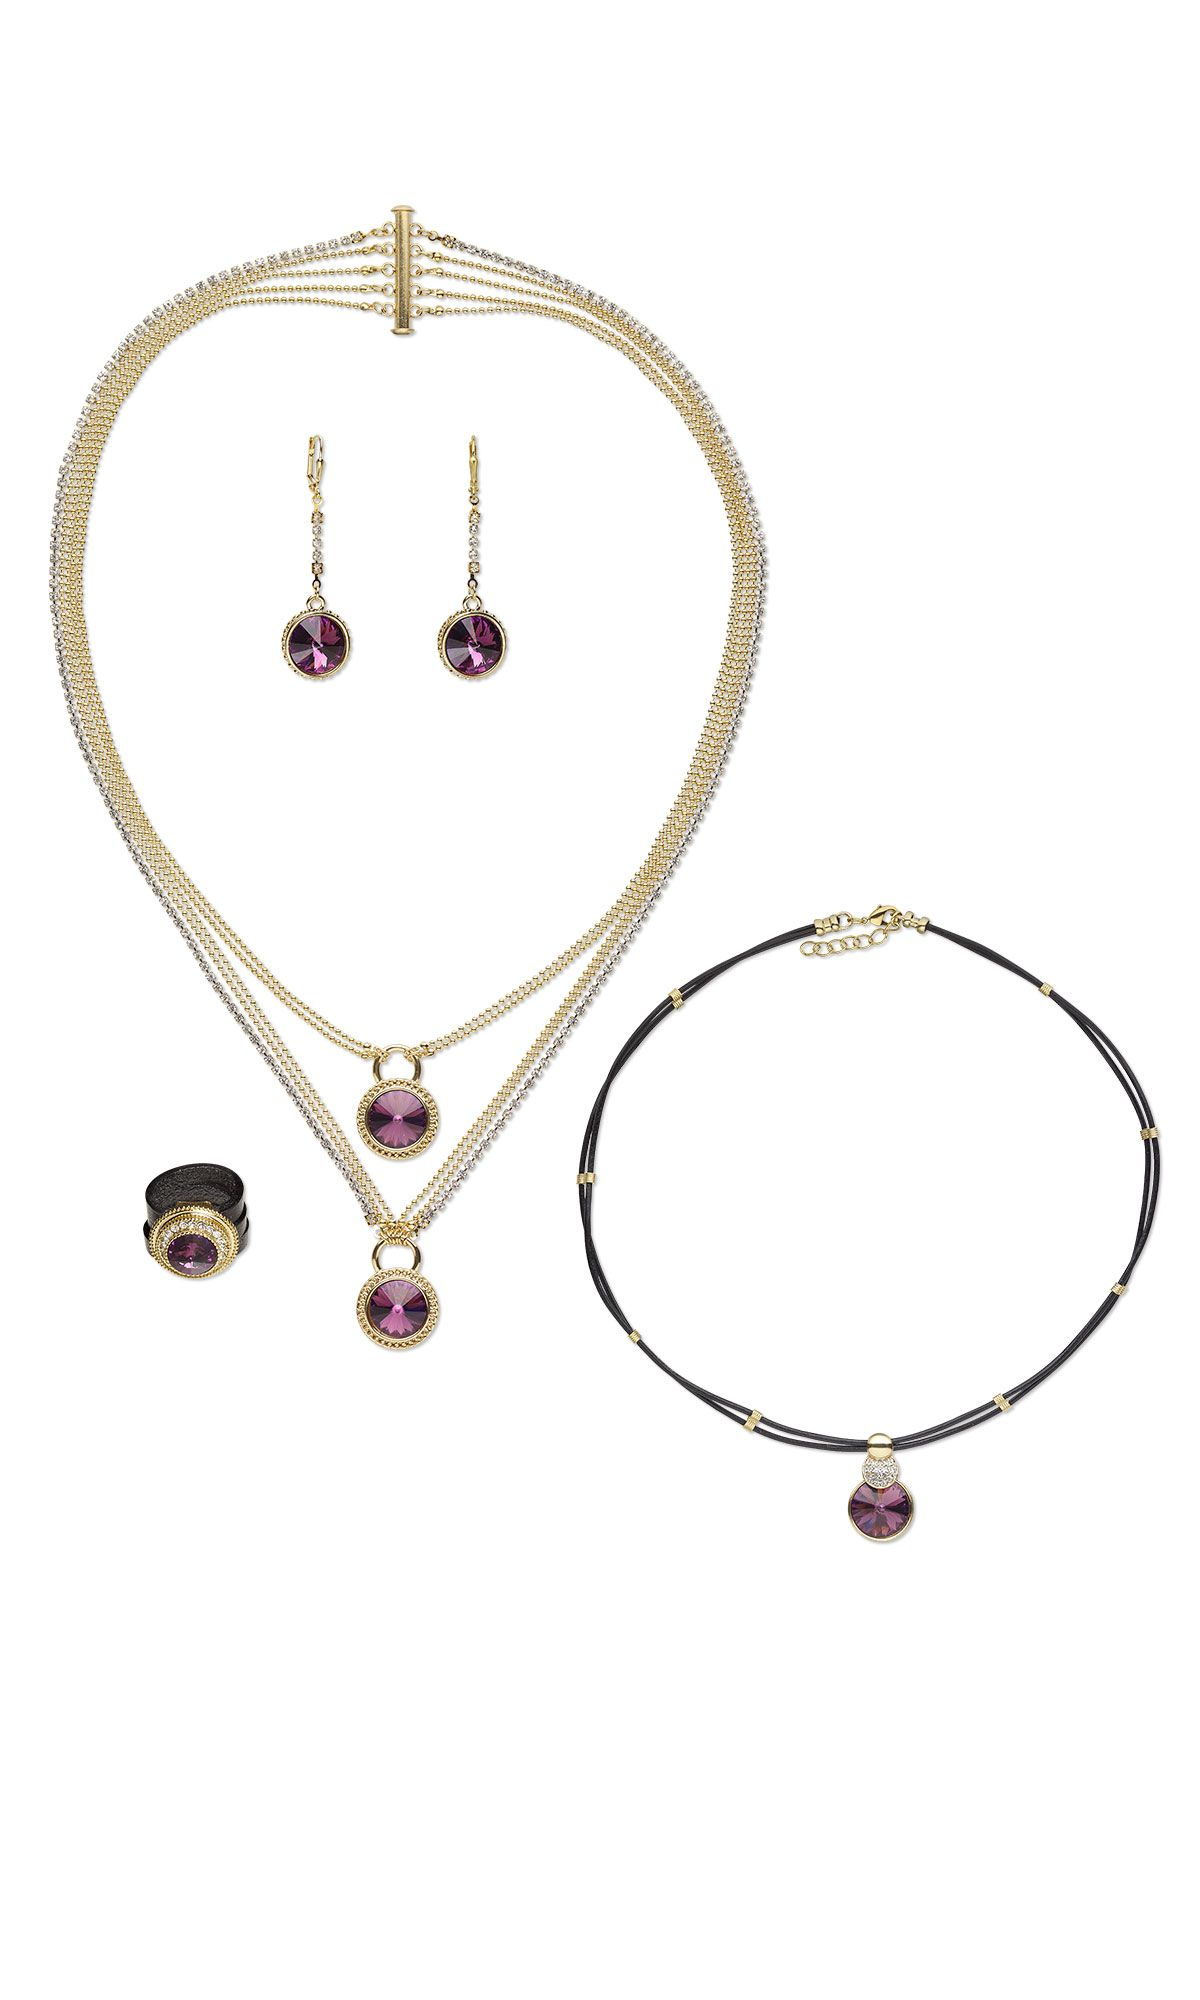 Jewelry design twopiece necklace earring and ring set with